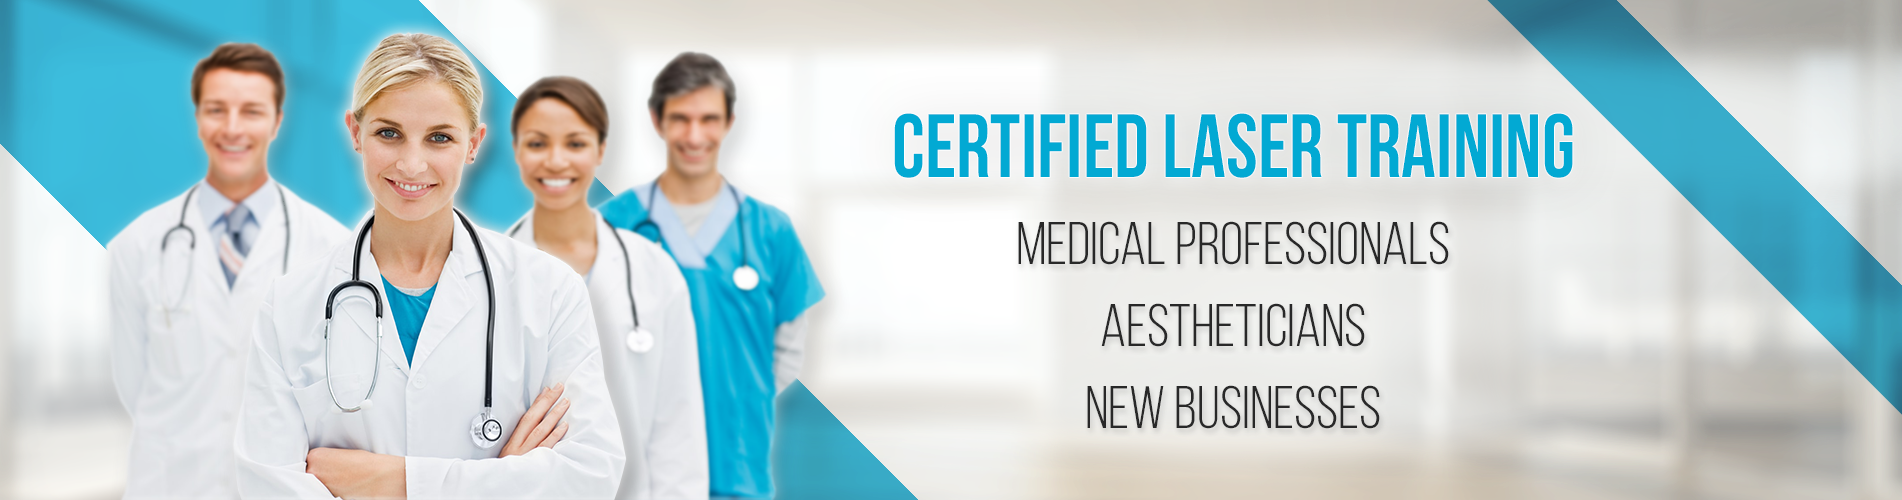 Aesthetician Certified Laser Training | Aesthetic Laser Training